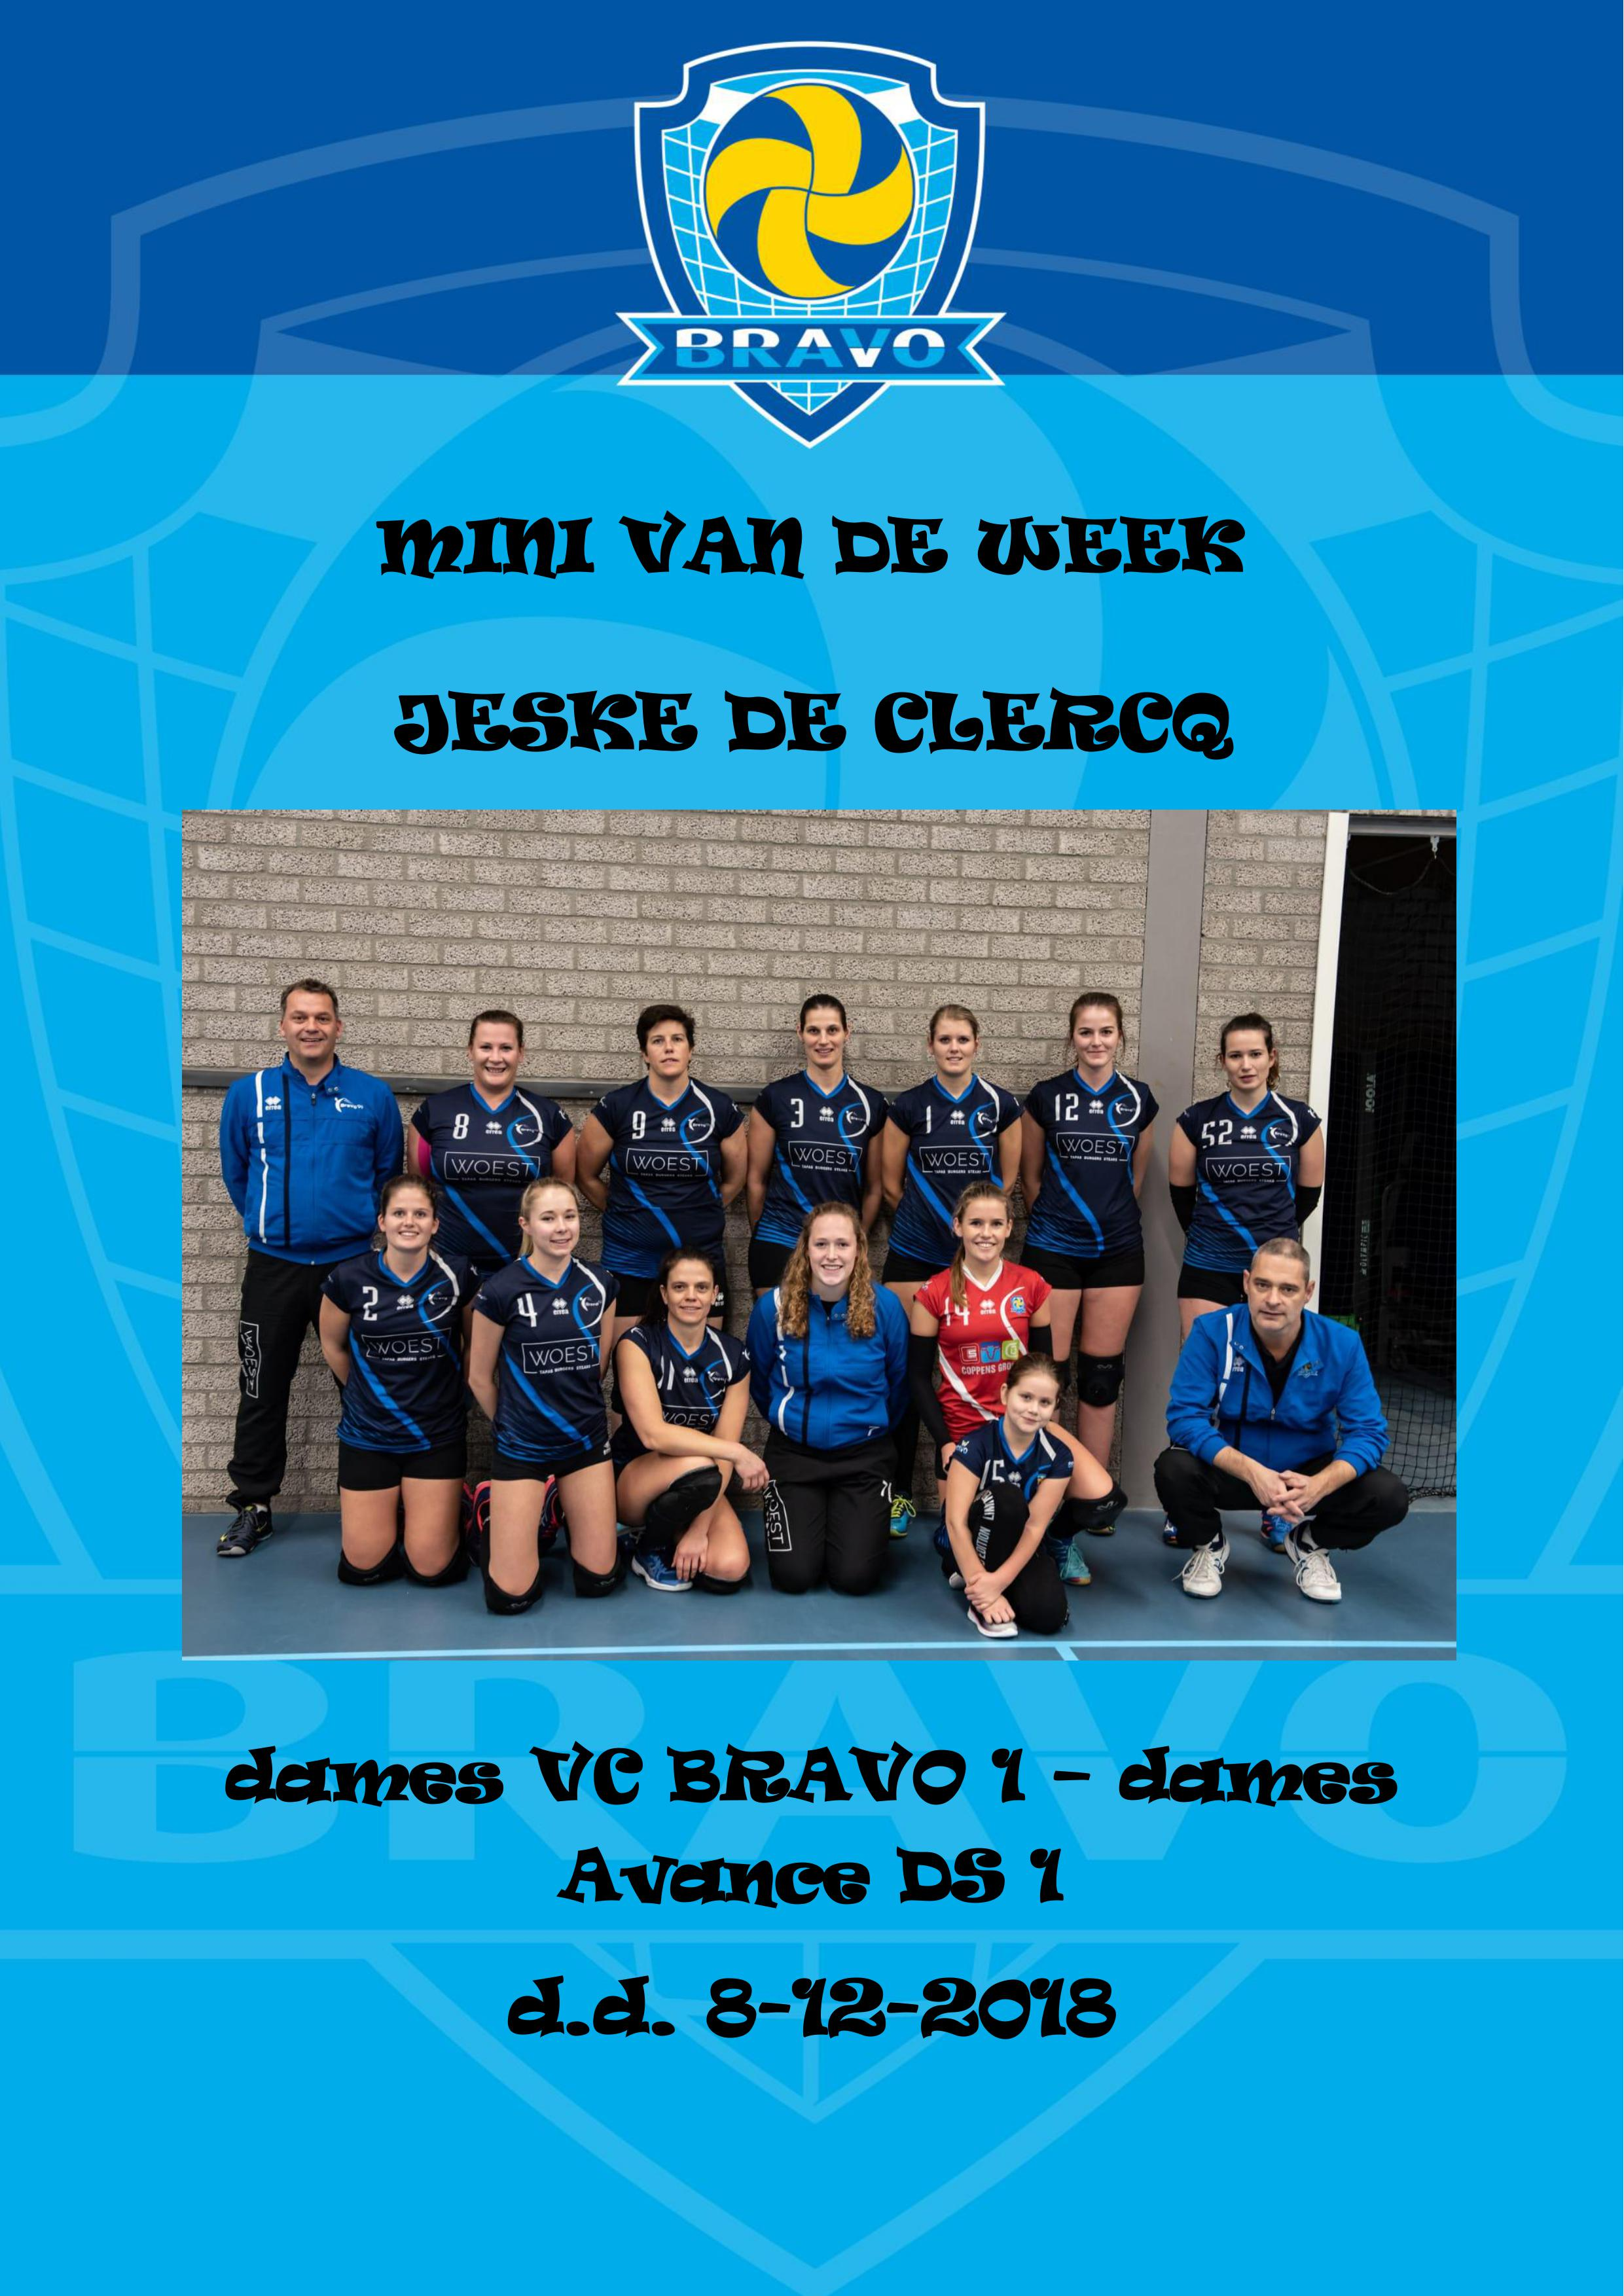 mini van de week dames 8-12-2018